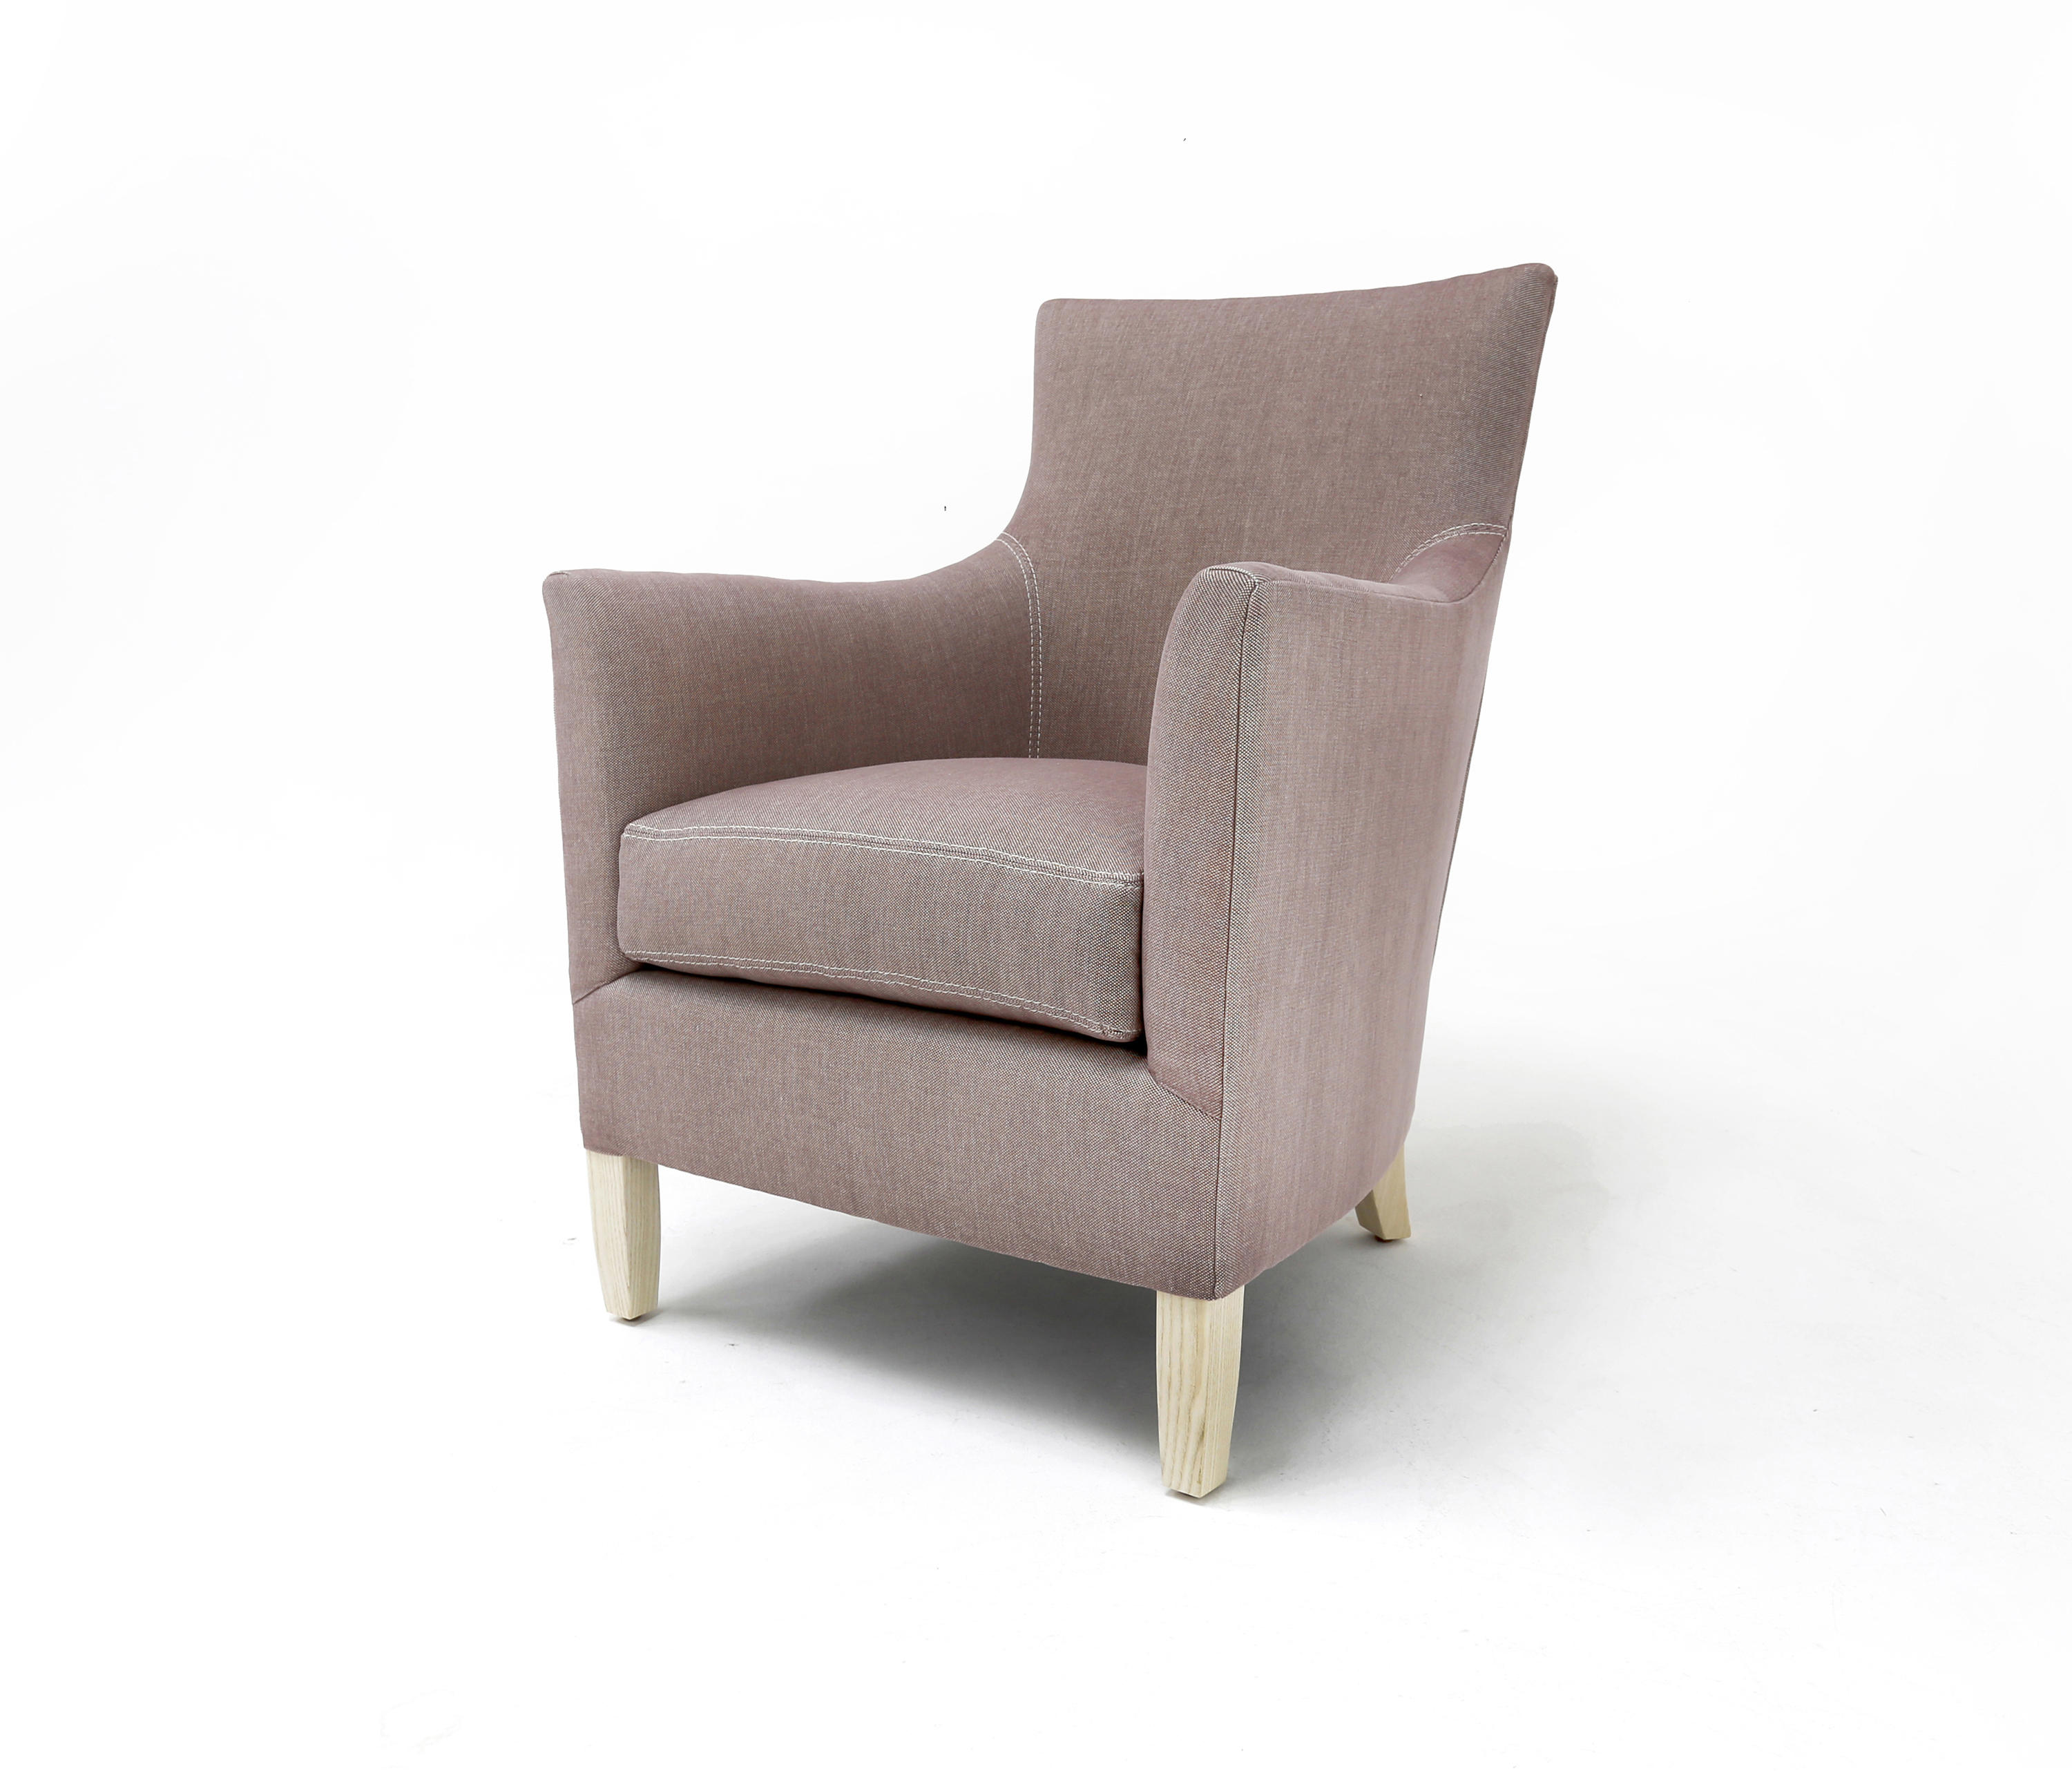 VICTOR CLUB CHAIR Lounge chairs from Verellen